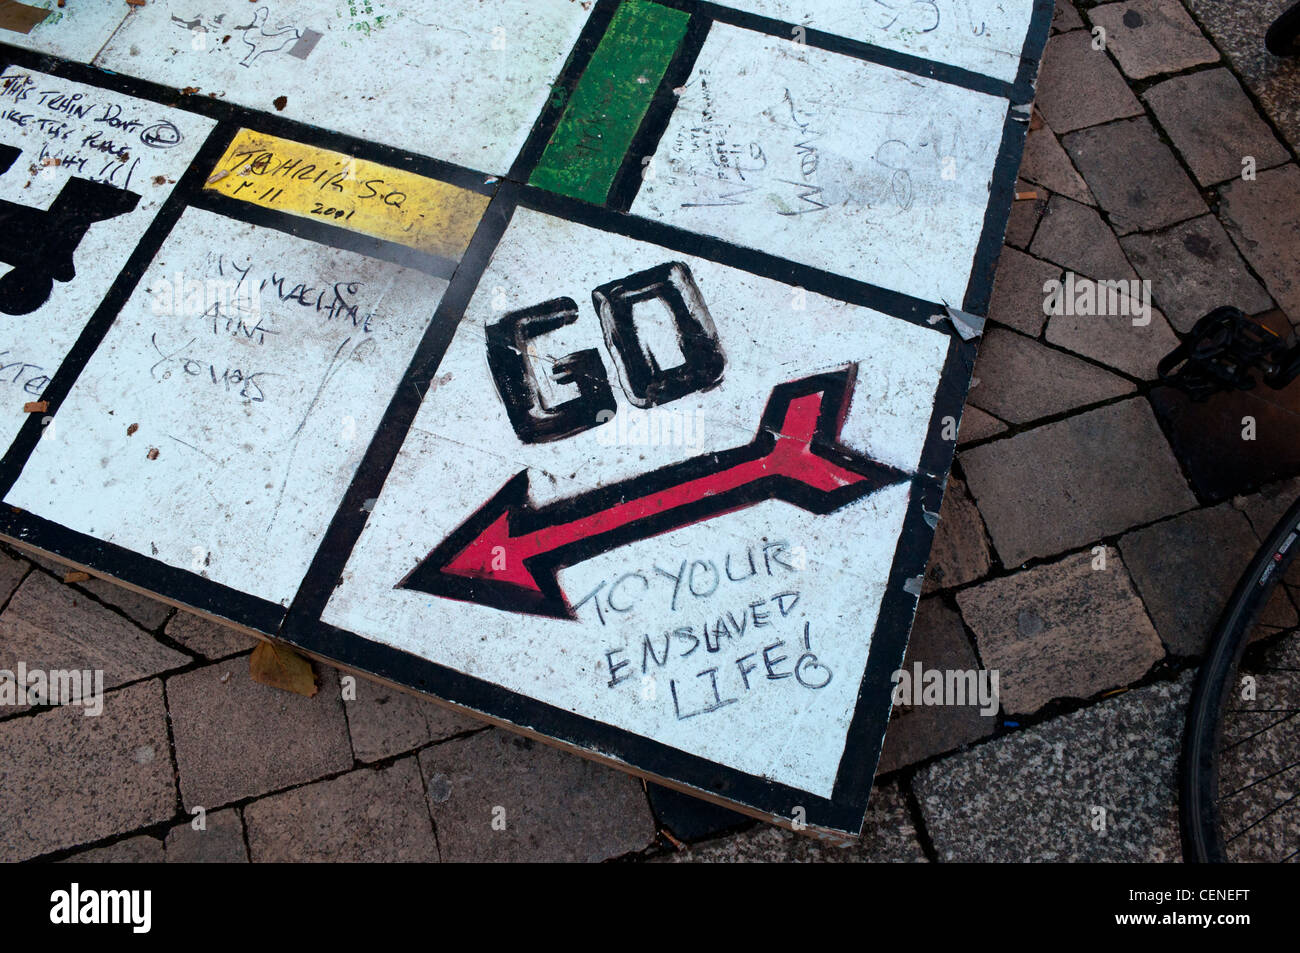 A giant monopoly board outside St Paul's Cathedral in London UK during the Occupy protests of 2011 - 2012 - Stock Image